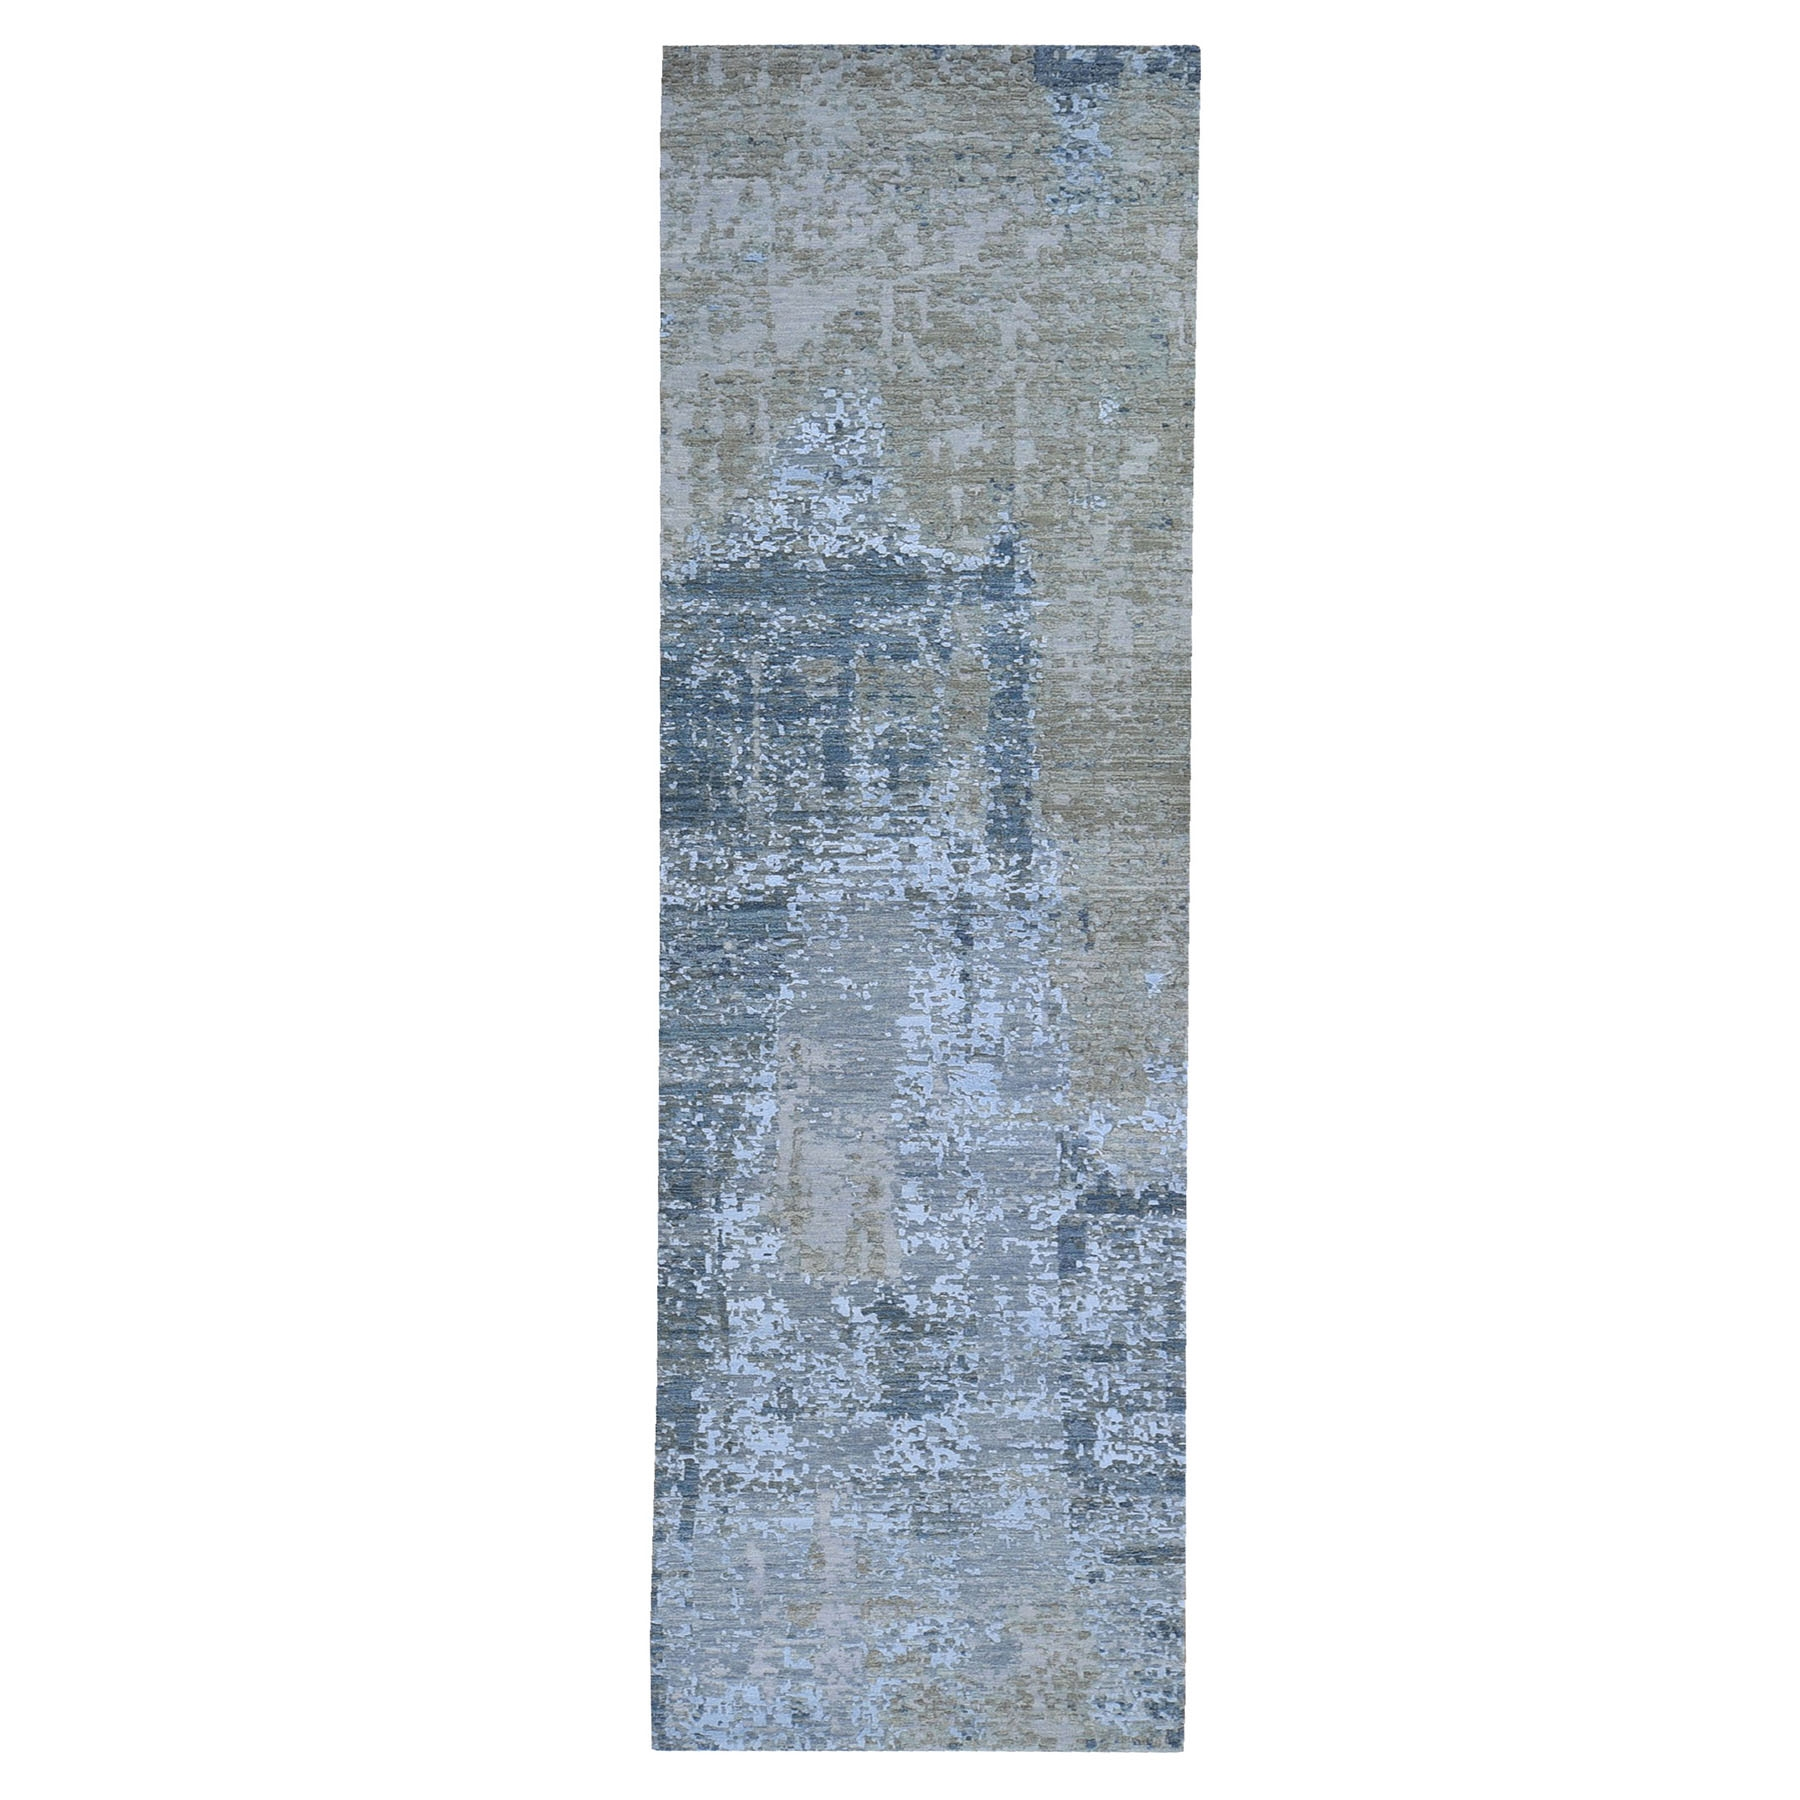 """2'6""""x12'3"""" Silver Blue Abstract Design Wool and Silk Hi-Low Pile Dense Weave Hand Knotted Oriental Rug"""